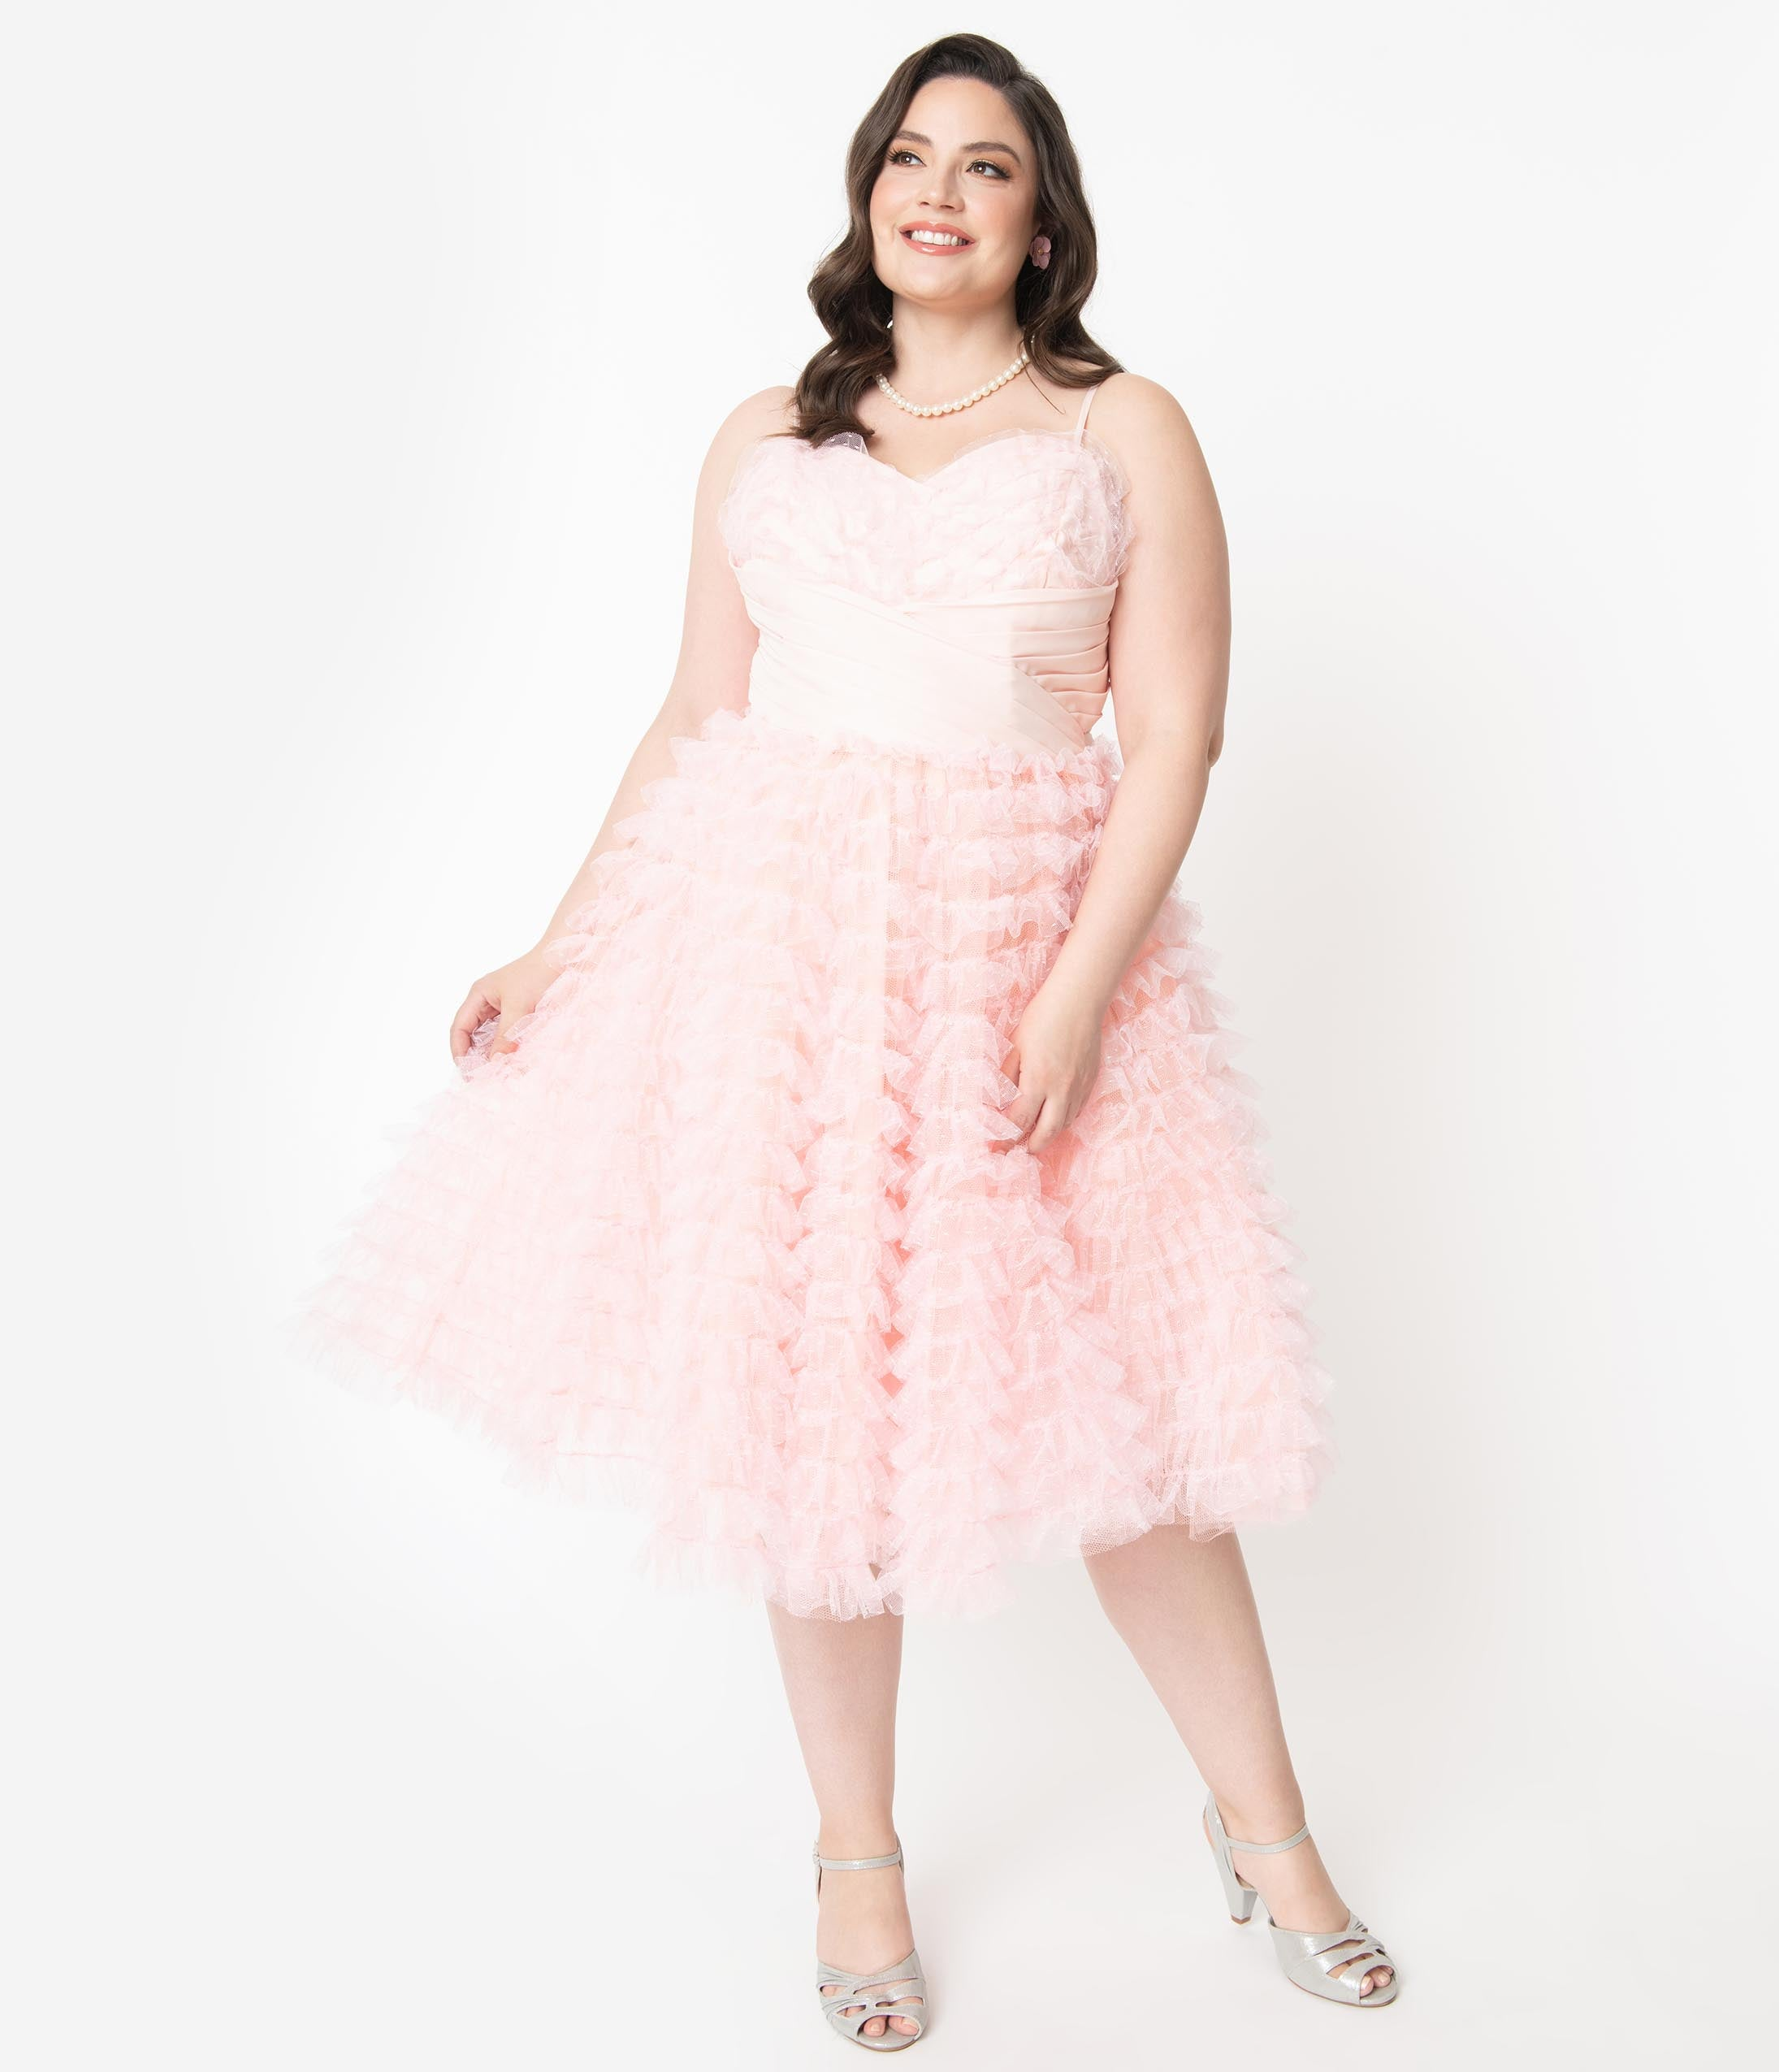 1950s Cocktail Dresses, Party Dresses Unique Vintage Plus Size 1950S Pale Pink Ruffled Tulle Sweetheart Cupcake Swing Dress $110.00 AT vintagedancer.com